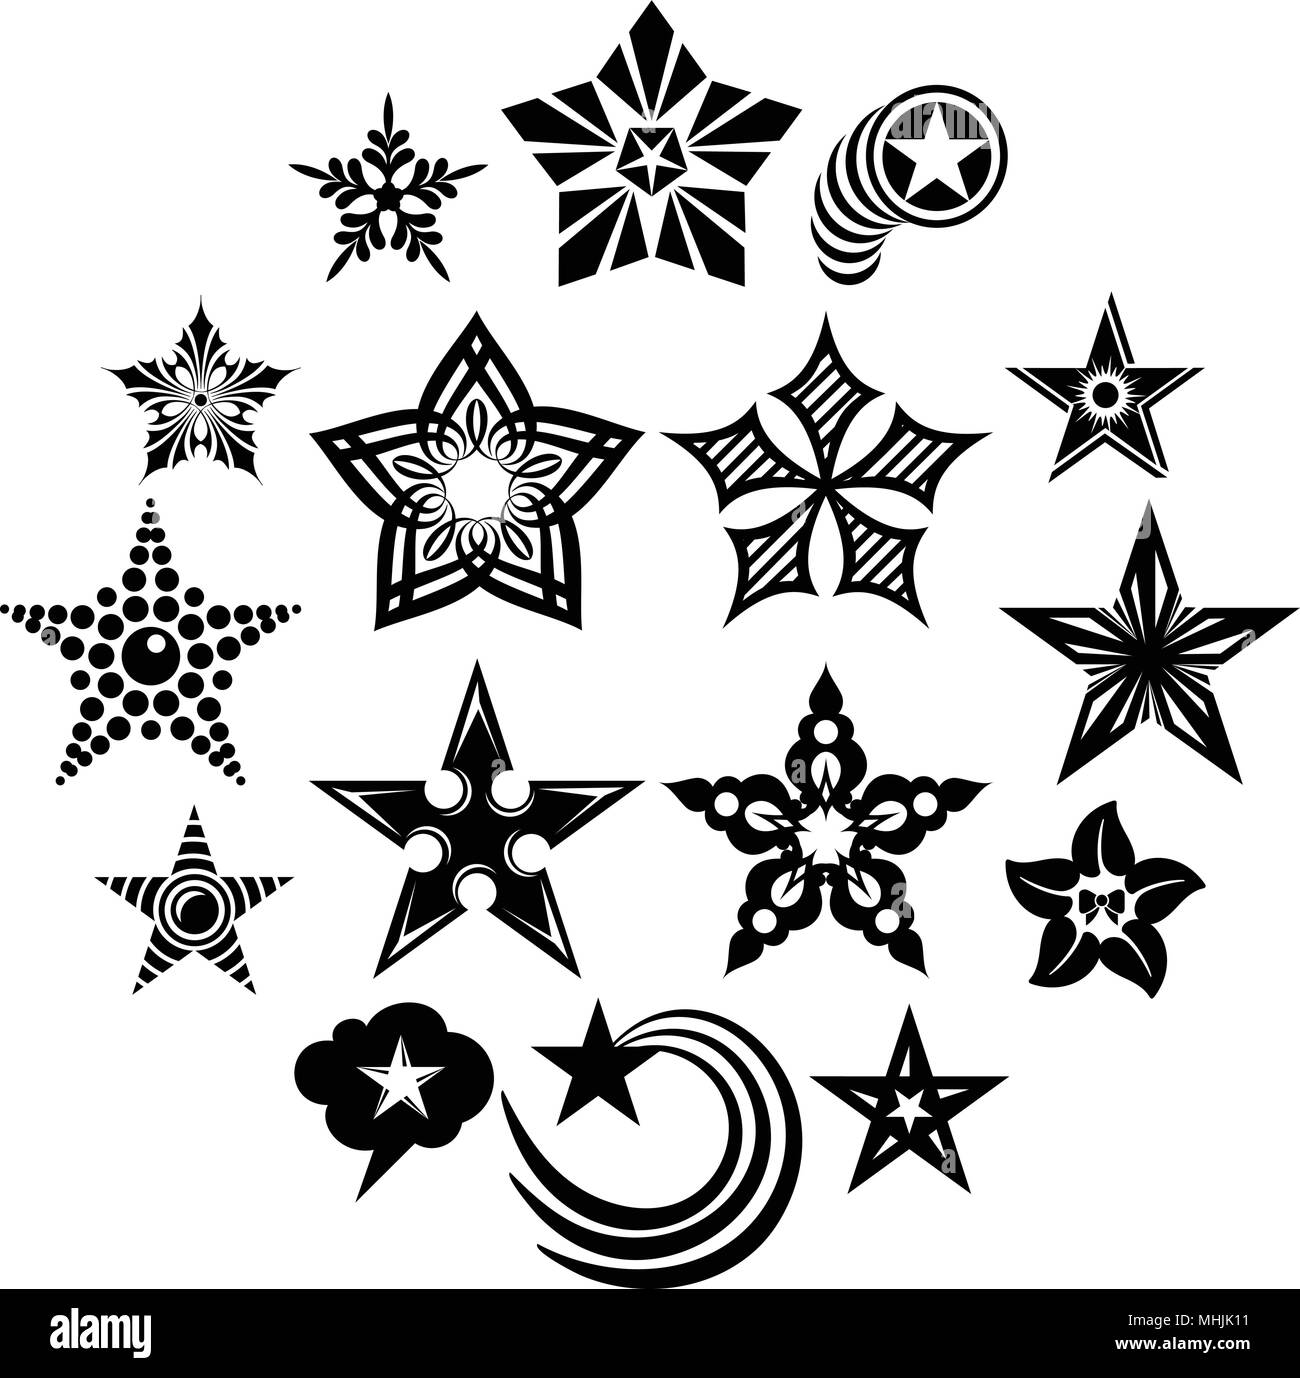 Decorative stars icons set, simple style Stock Vector Image & Art